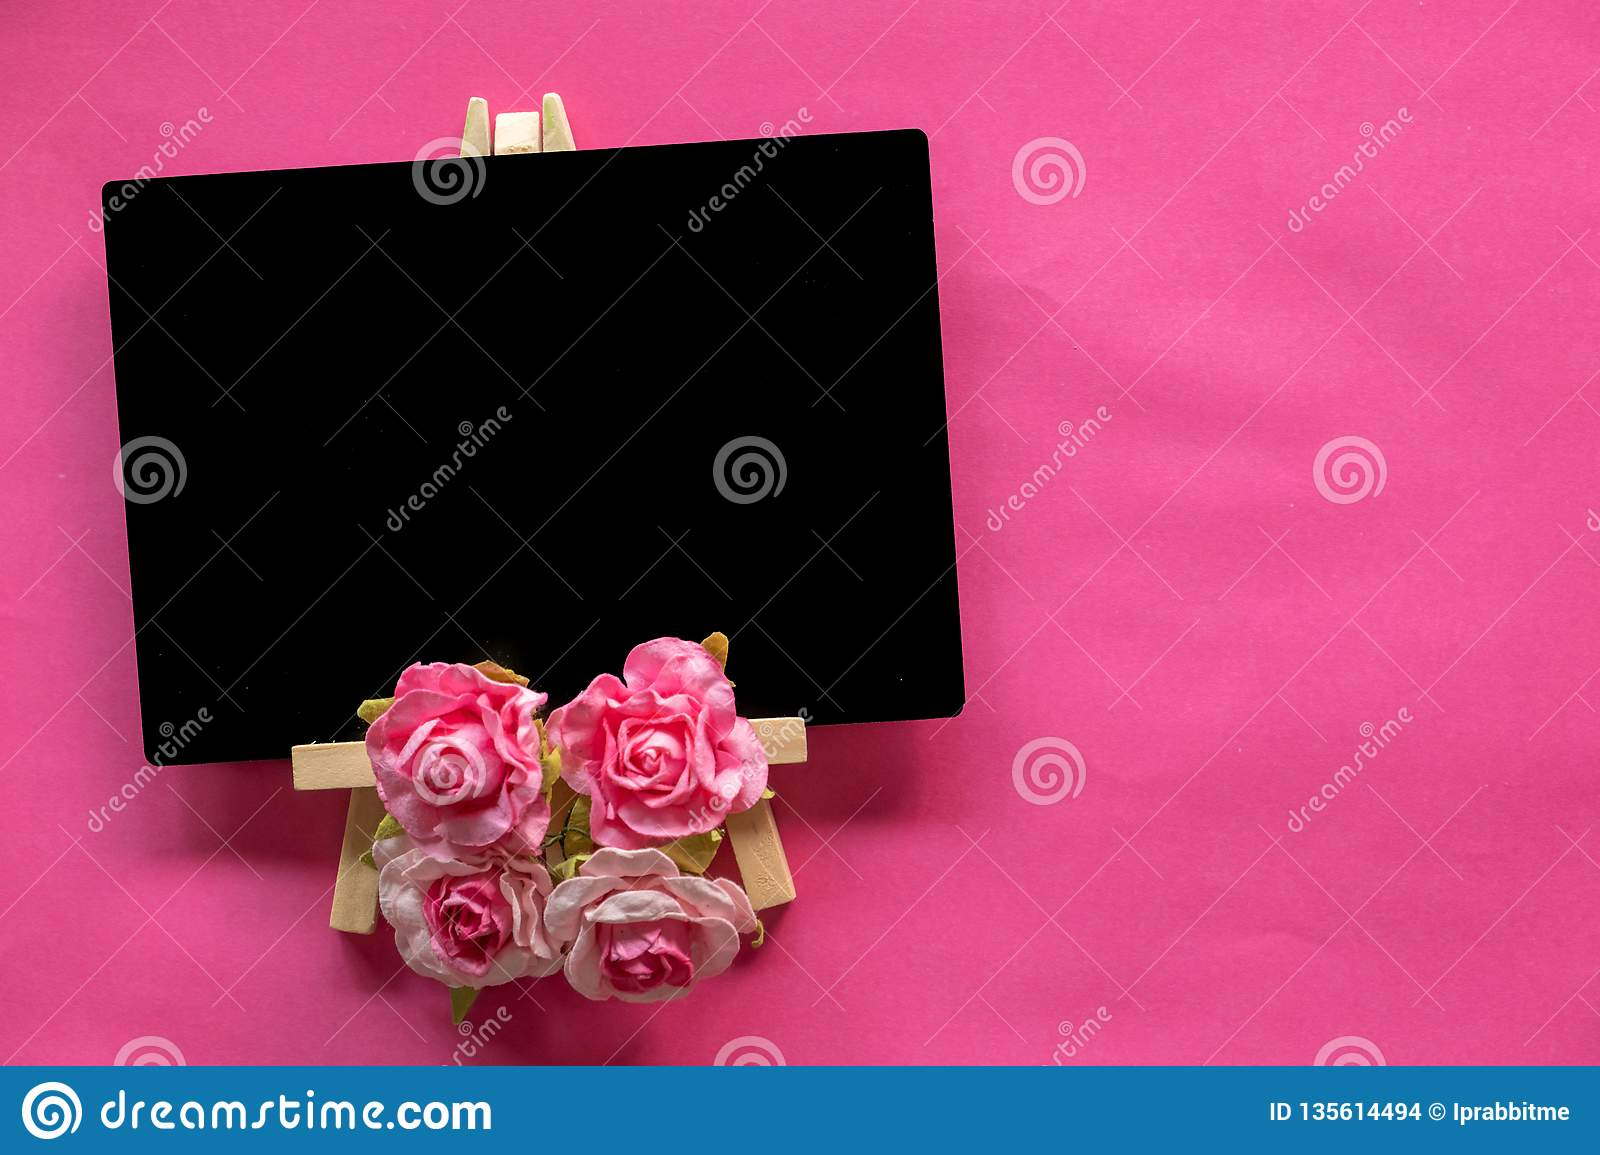 blank blackboard and pink flower on pink background with copy space, Valentines Day concept